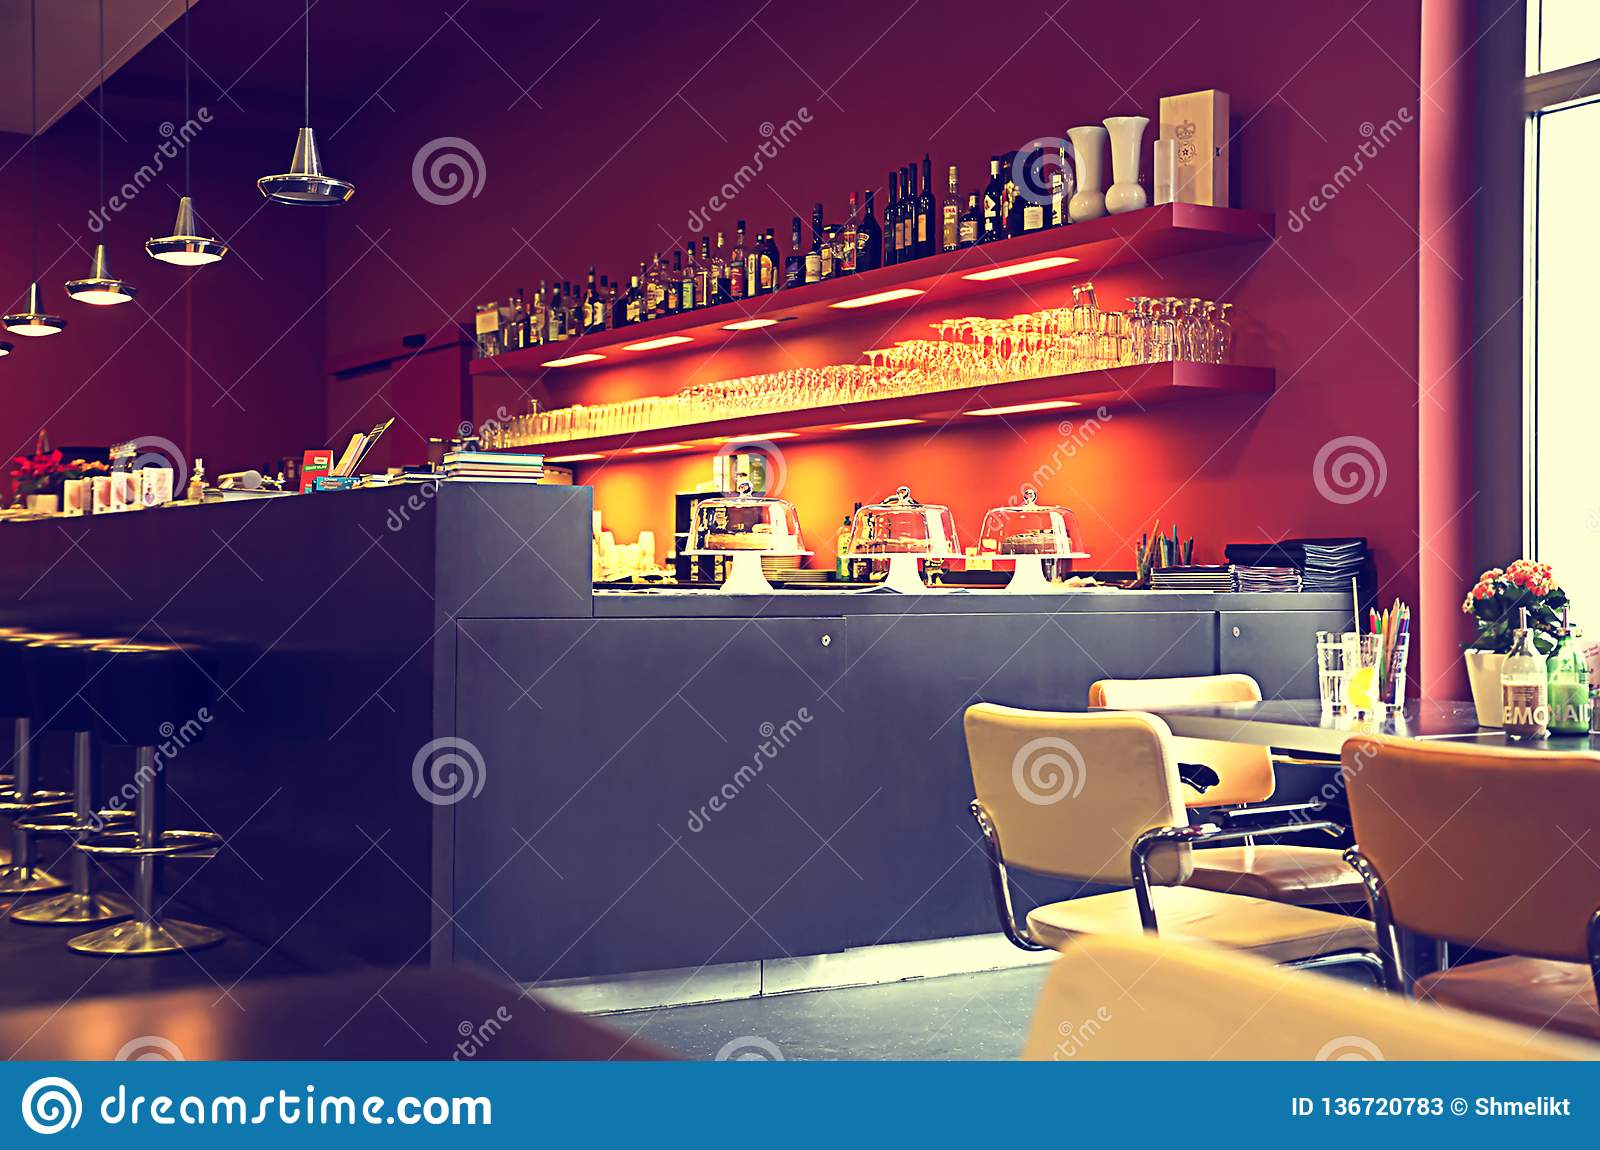 578 Cafe Counter Wallpaper Photos Free Royalty Free Stock Photos From Dreamstime